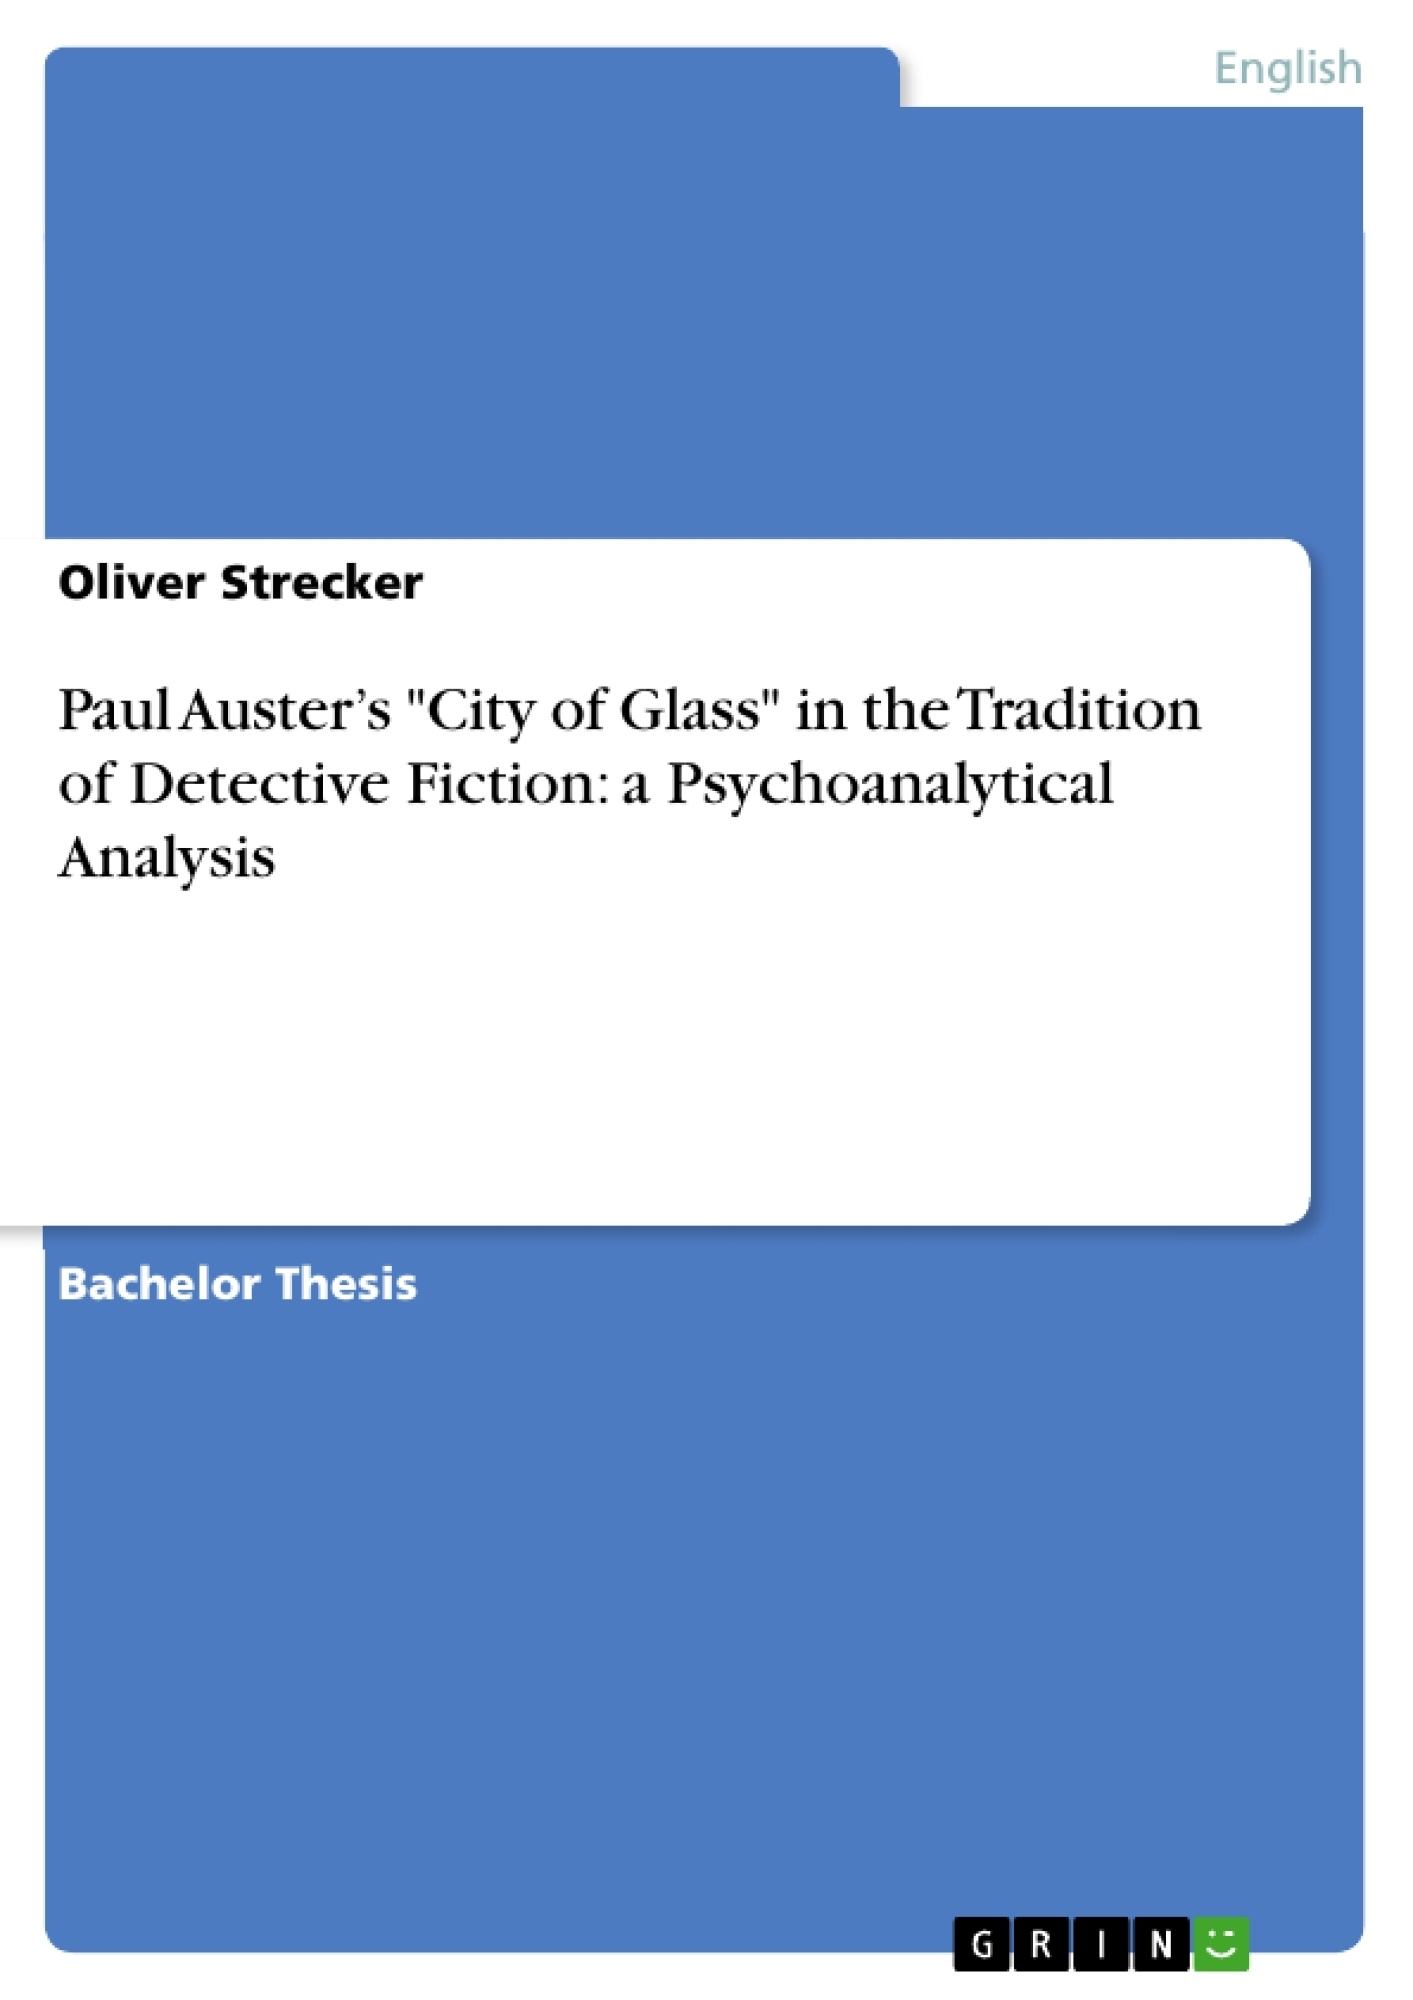 """Title: Paul Auster's """"City of Glass"""" in the Tradition of Detective Fiction: a Psychoanalytical Analysis"""